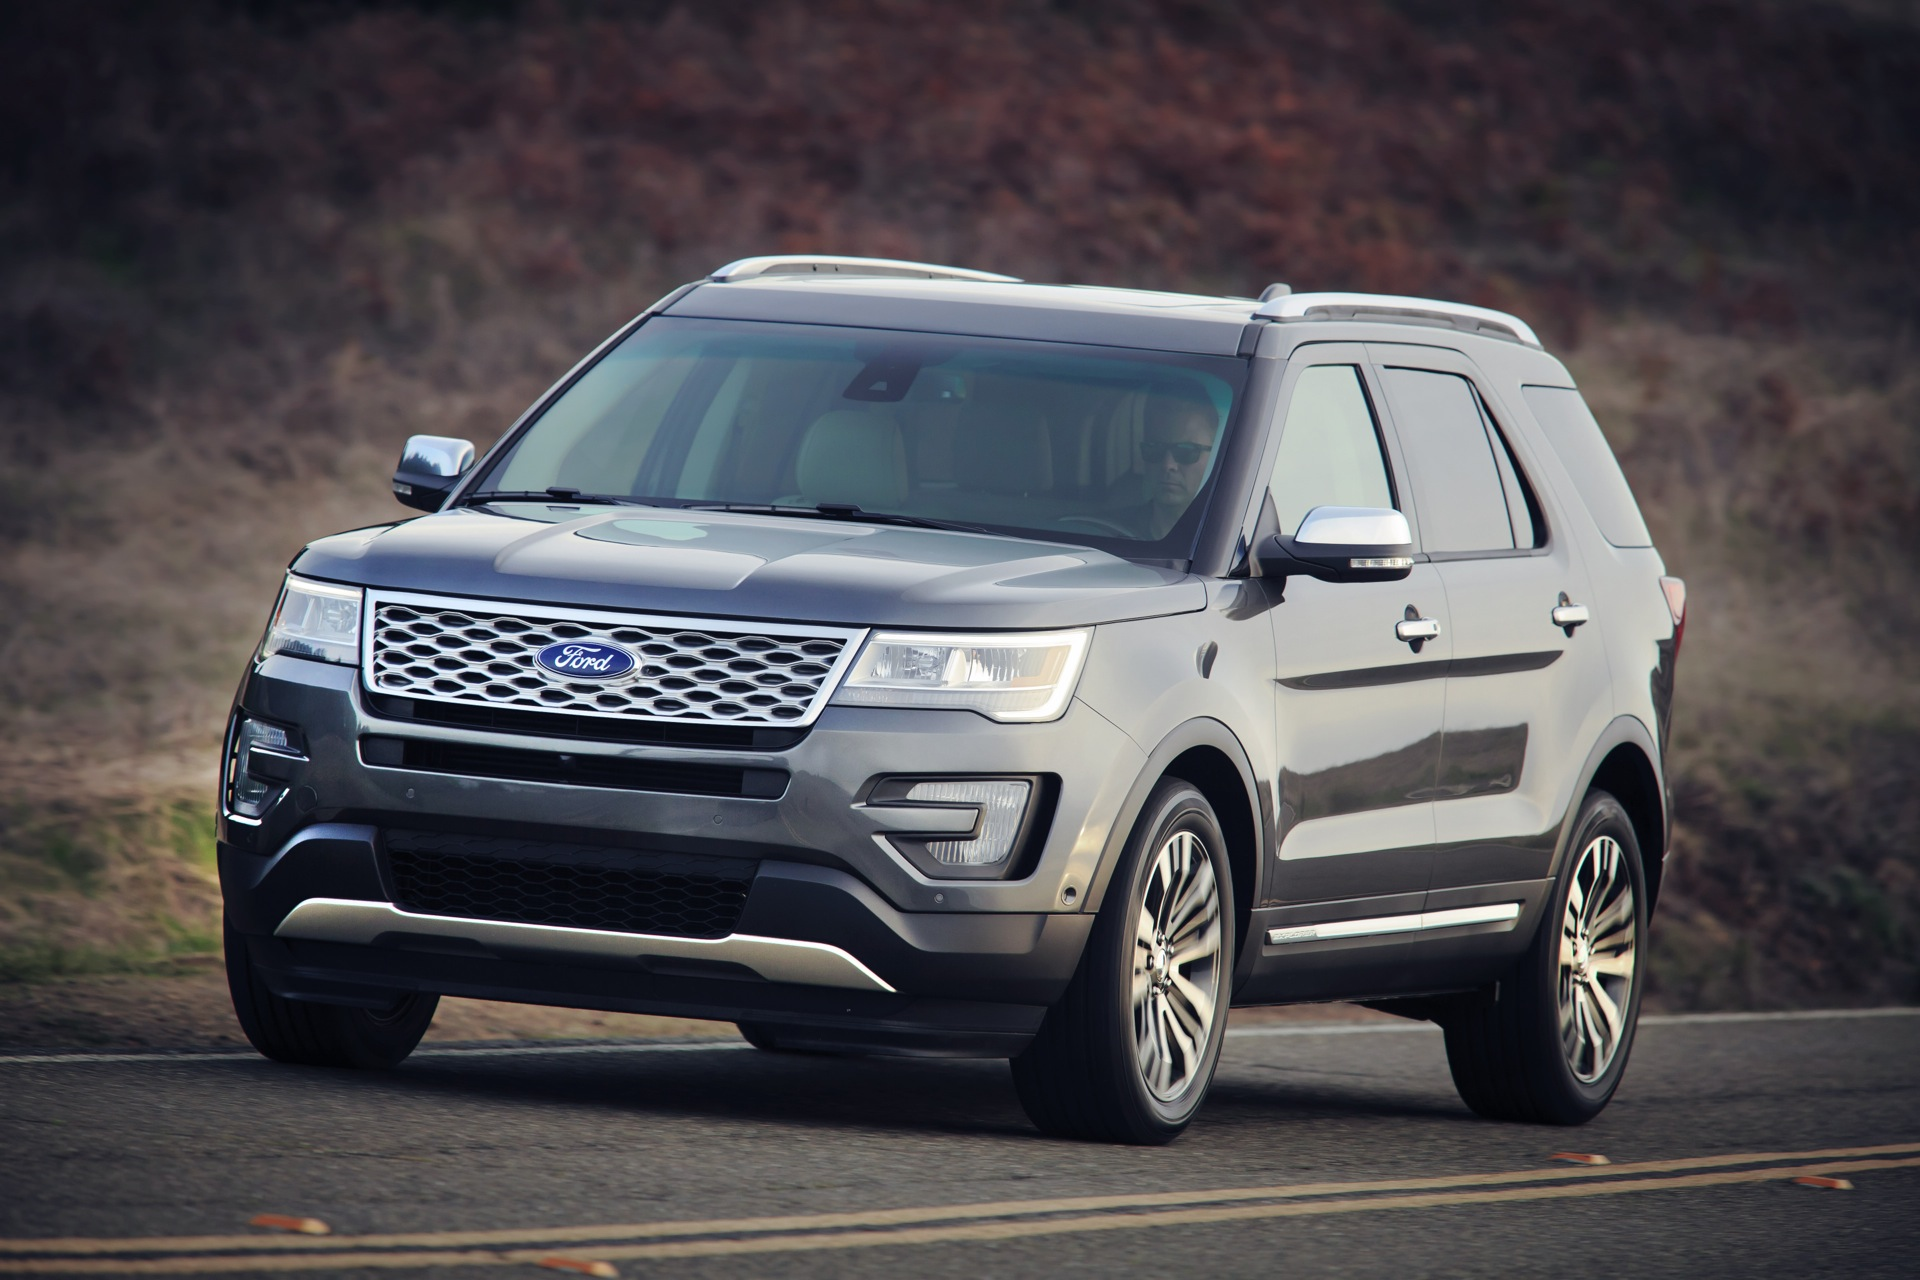 Ford 2016 Explorer after its upgrading #10